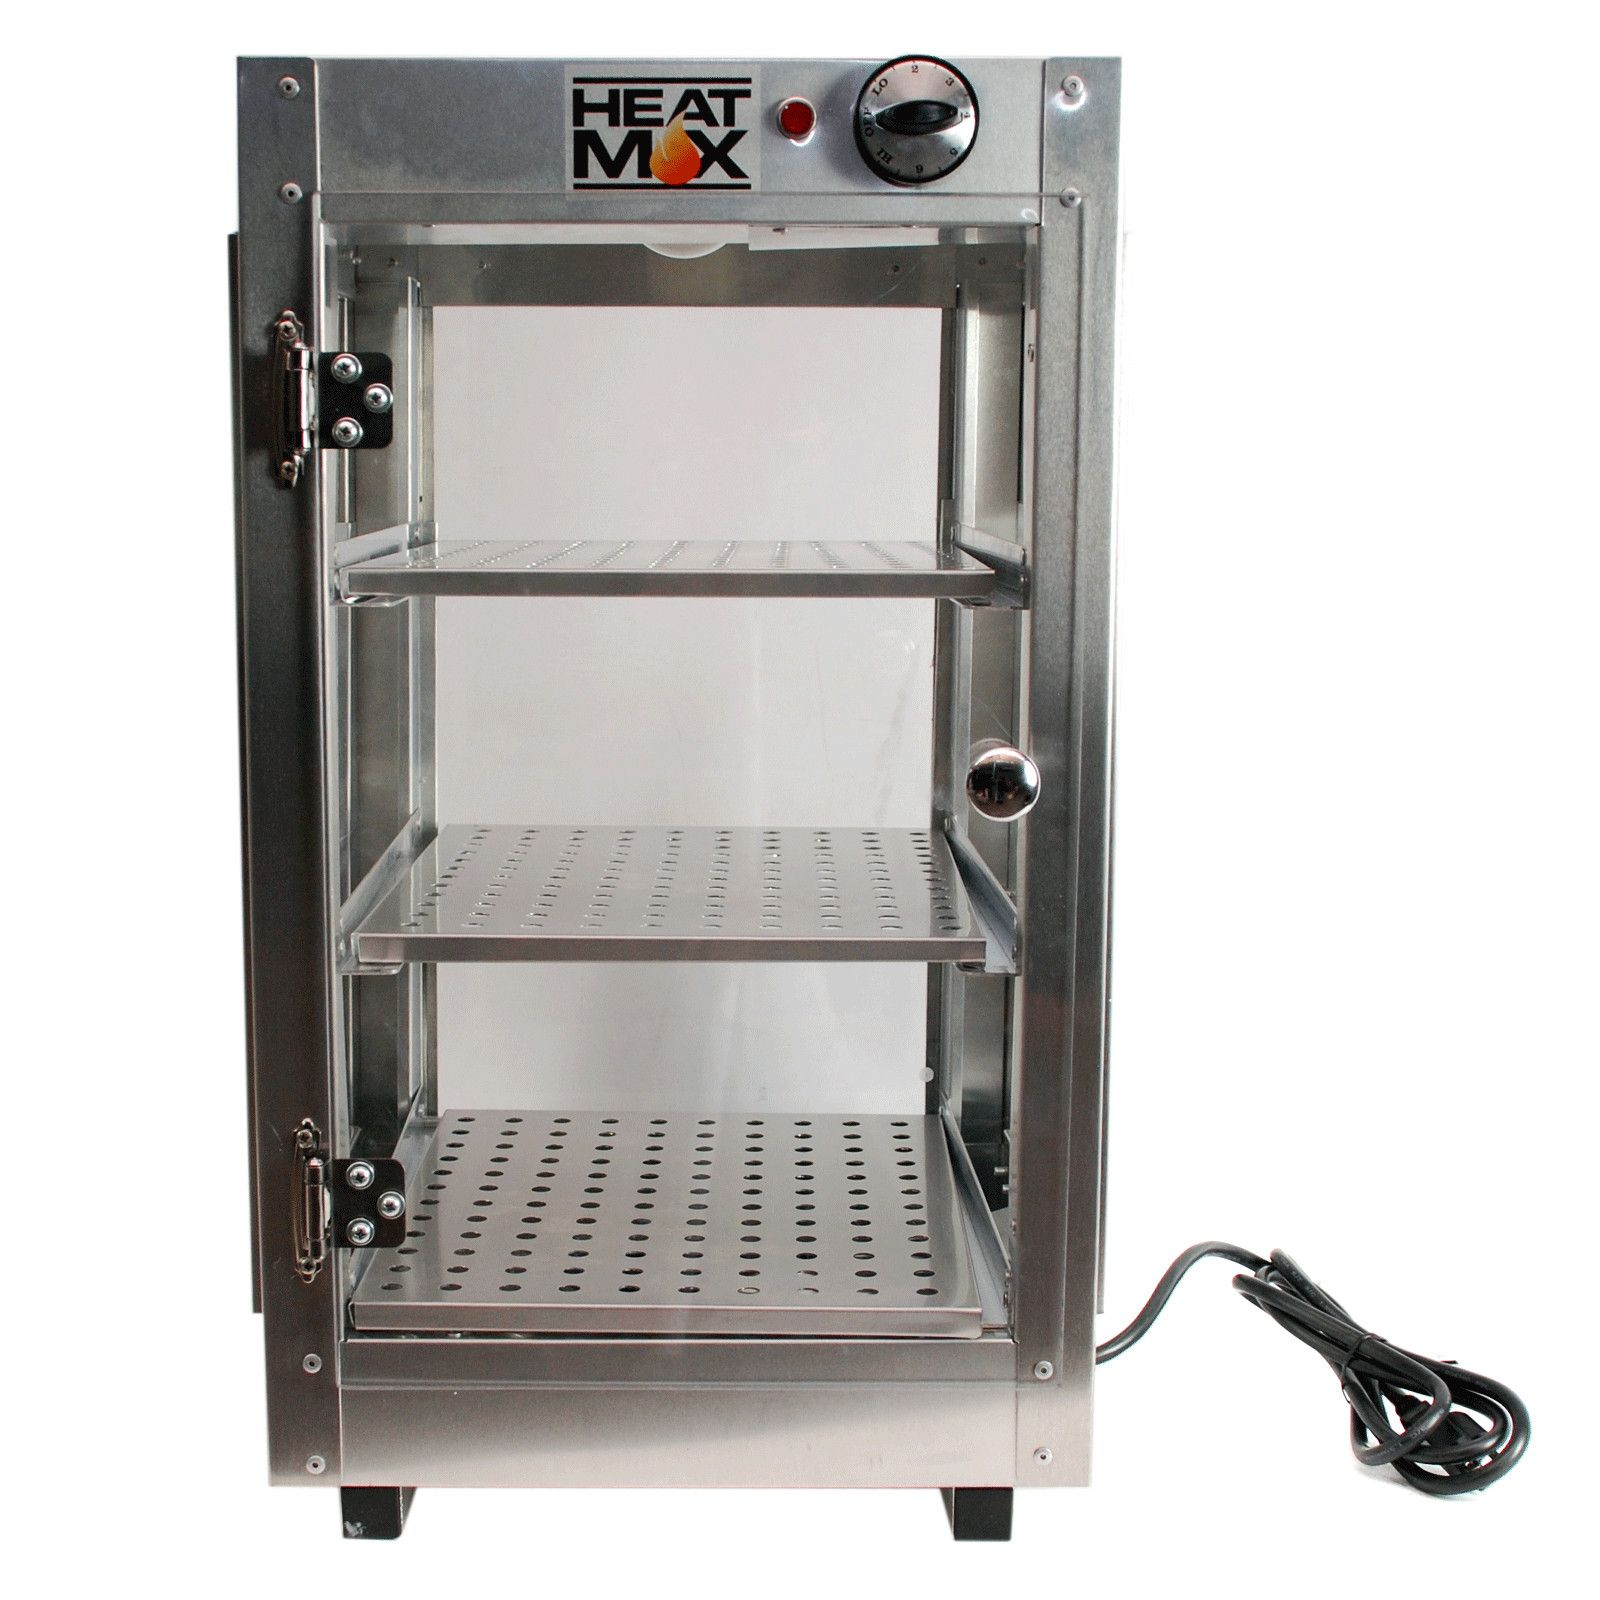 heatmax mercial countertop food warmer display case with water